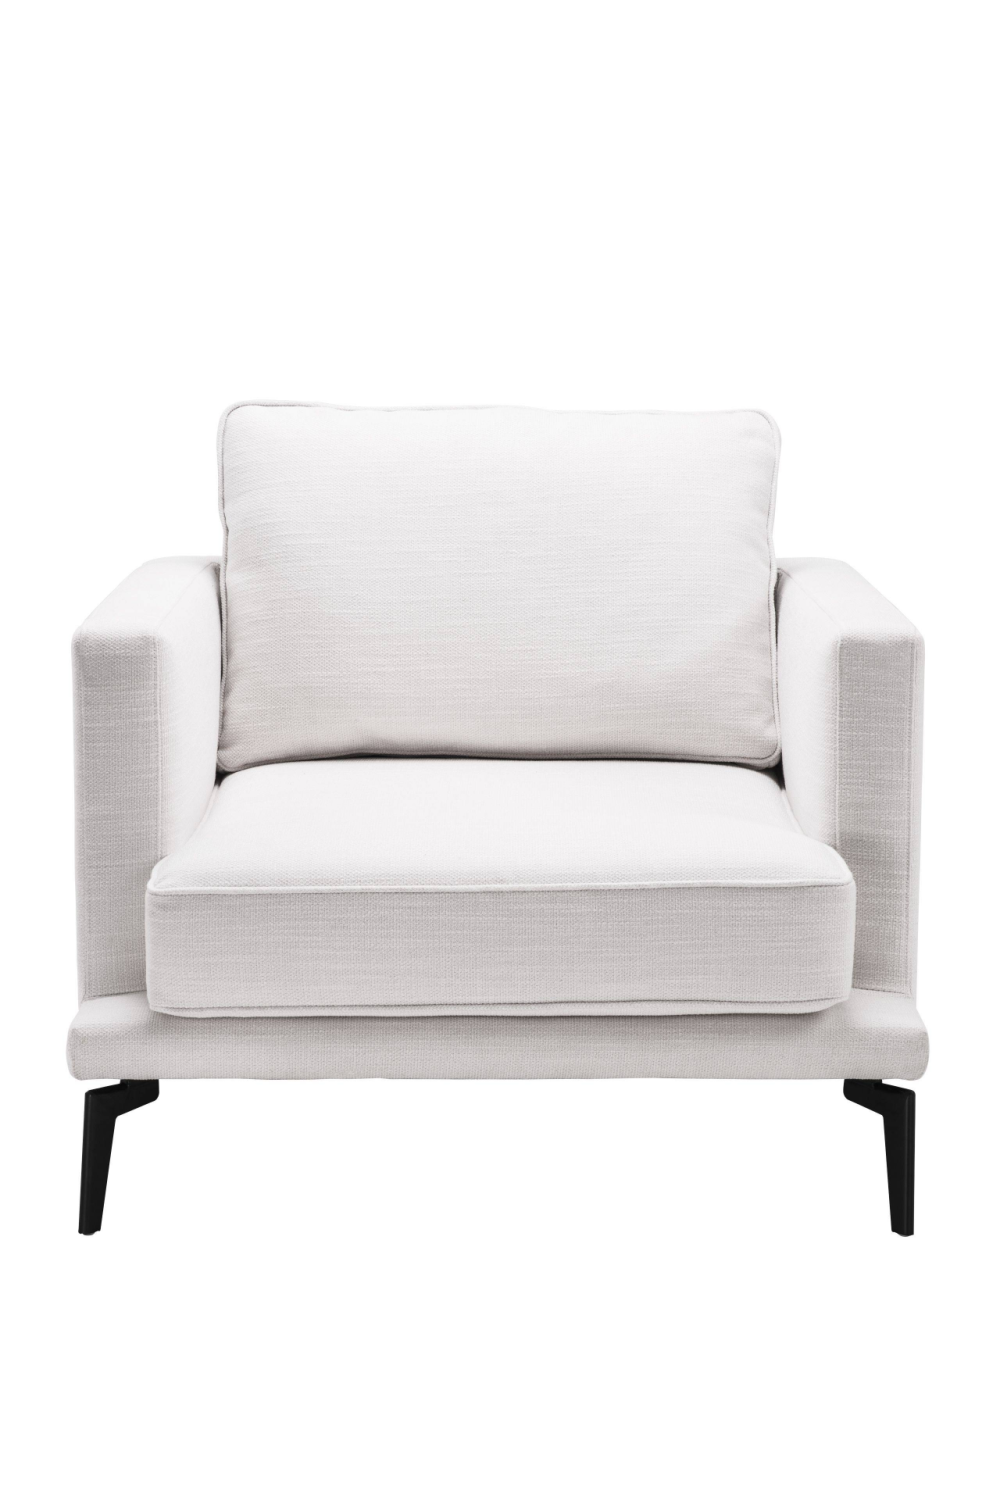 White Minimalist Armchair | Eichholtz Avenue 54 | European Furniture